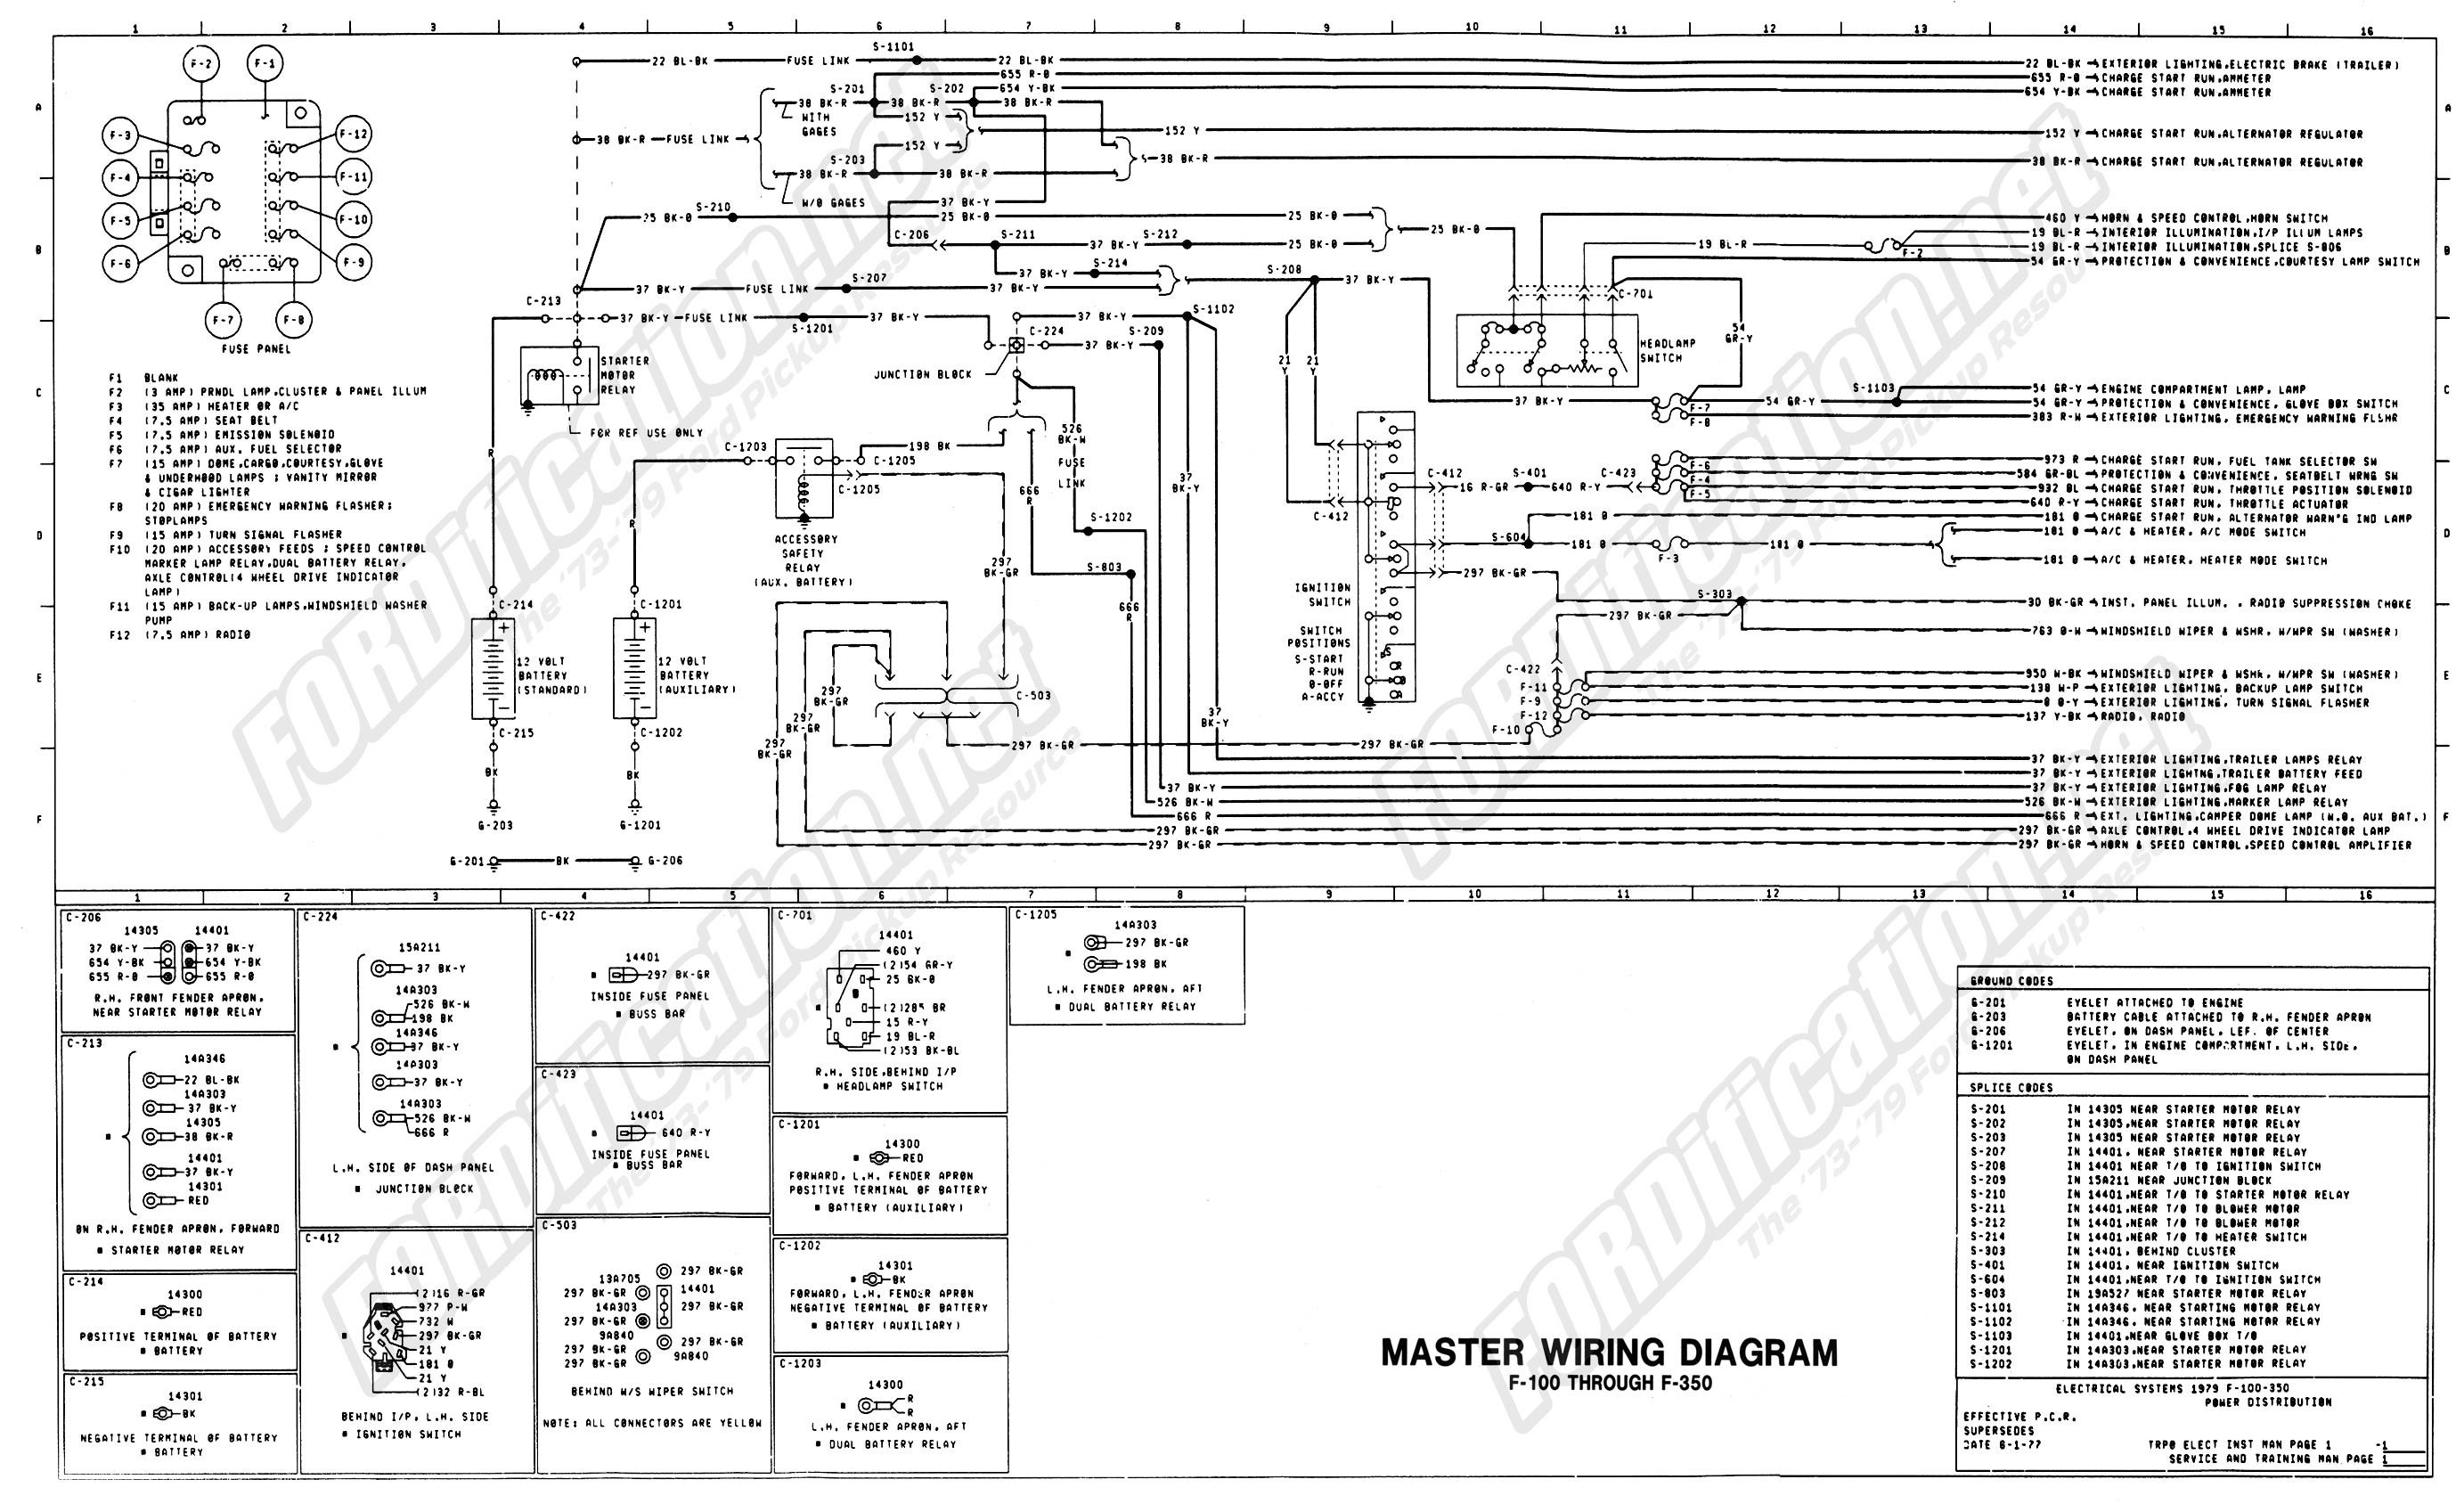 1999 Ford Windstar Fuse Box Manual Guide Wiring Diagram Lx Library Rh 30 Kaufmed De 2003 98